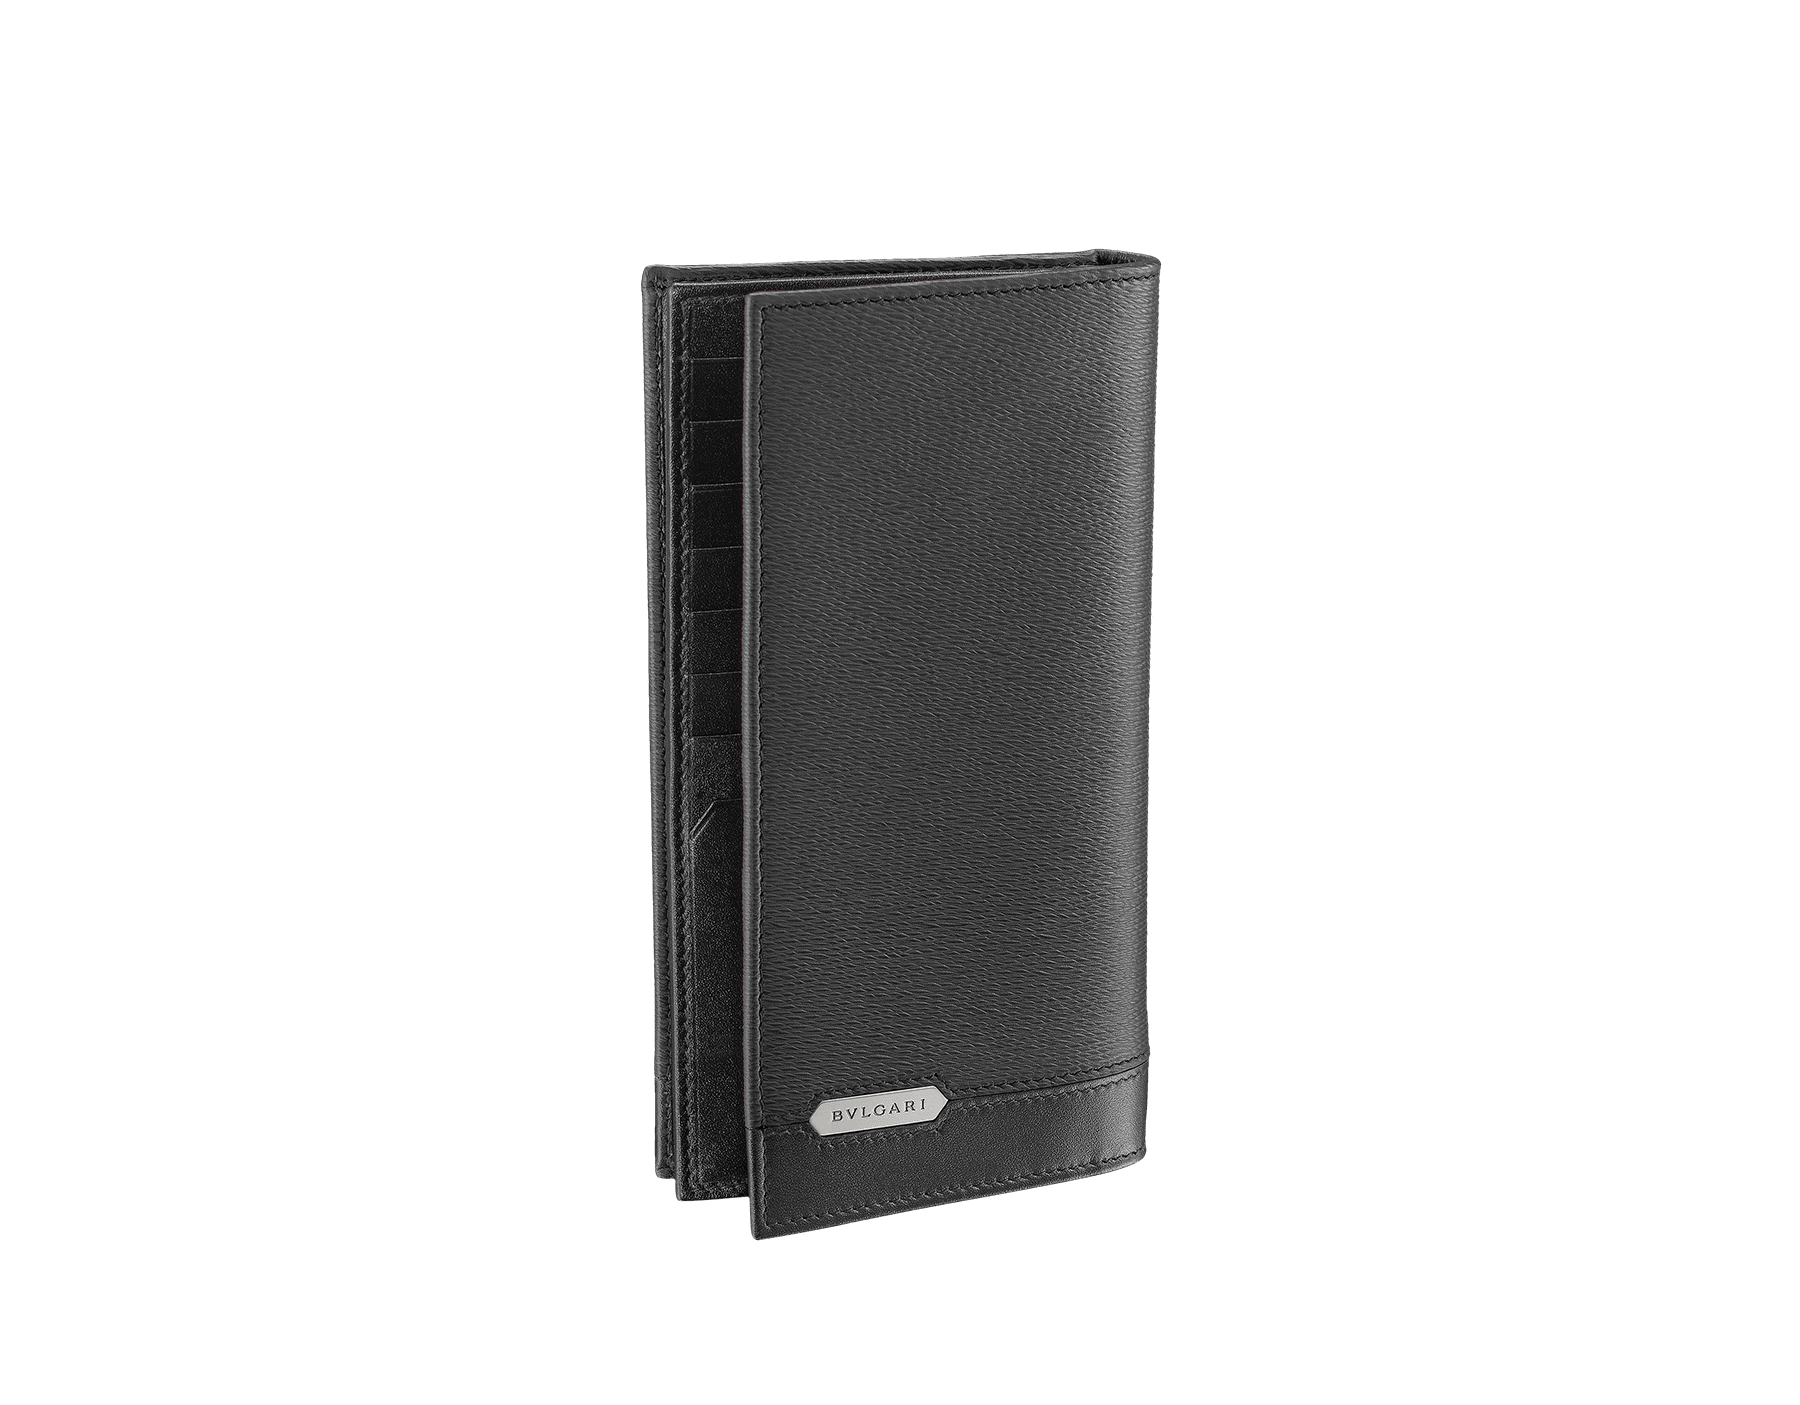 Serpenti Scaglie men's large wallet in mimetic jade grazed calf leather and black calf leather. Bvlgari logo engraved on the hexagonal scaglie metal plate finished in dark ruthenium. 581-WLT-Y-ZP-16C image 1